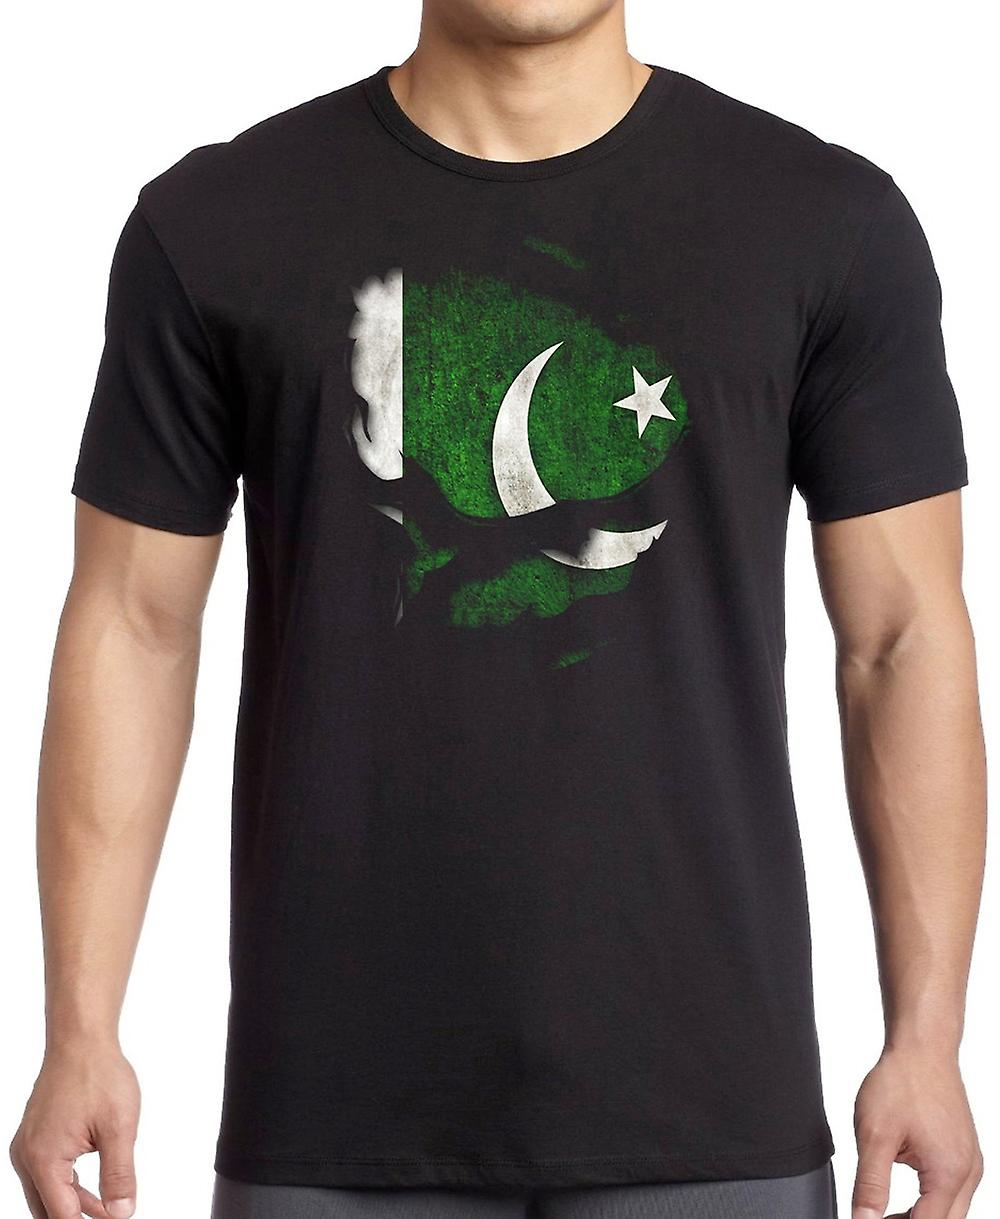 Pakistan slet effekt Under skjorta T Shirt